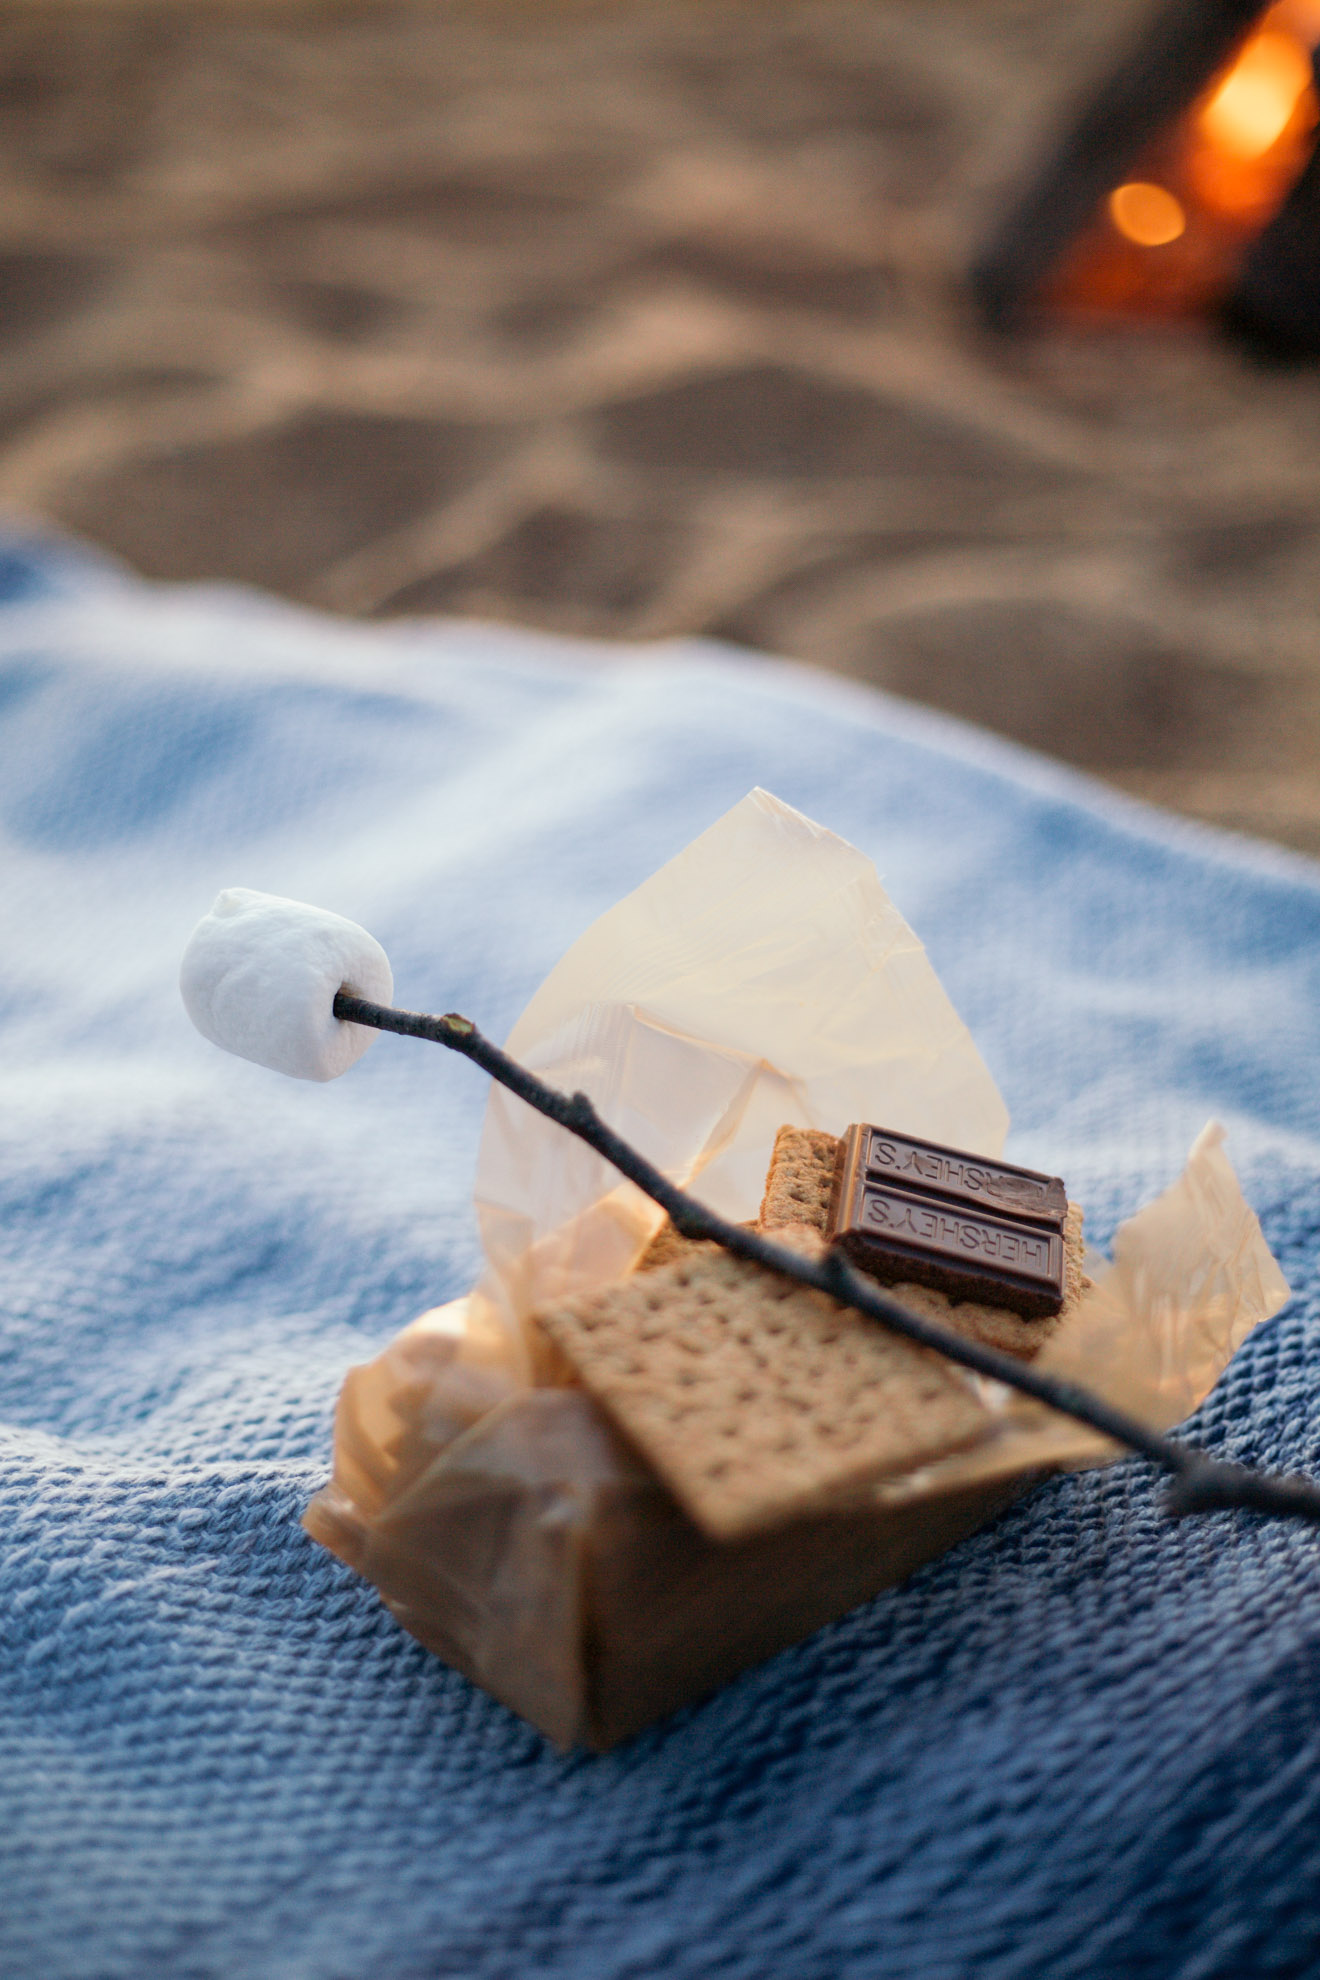 marshmallow on a stick with smores